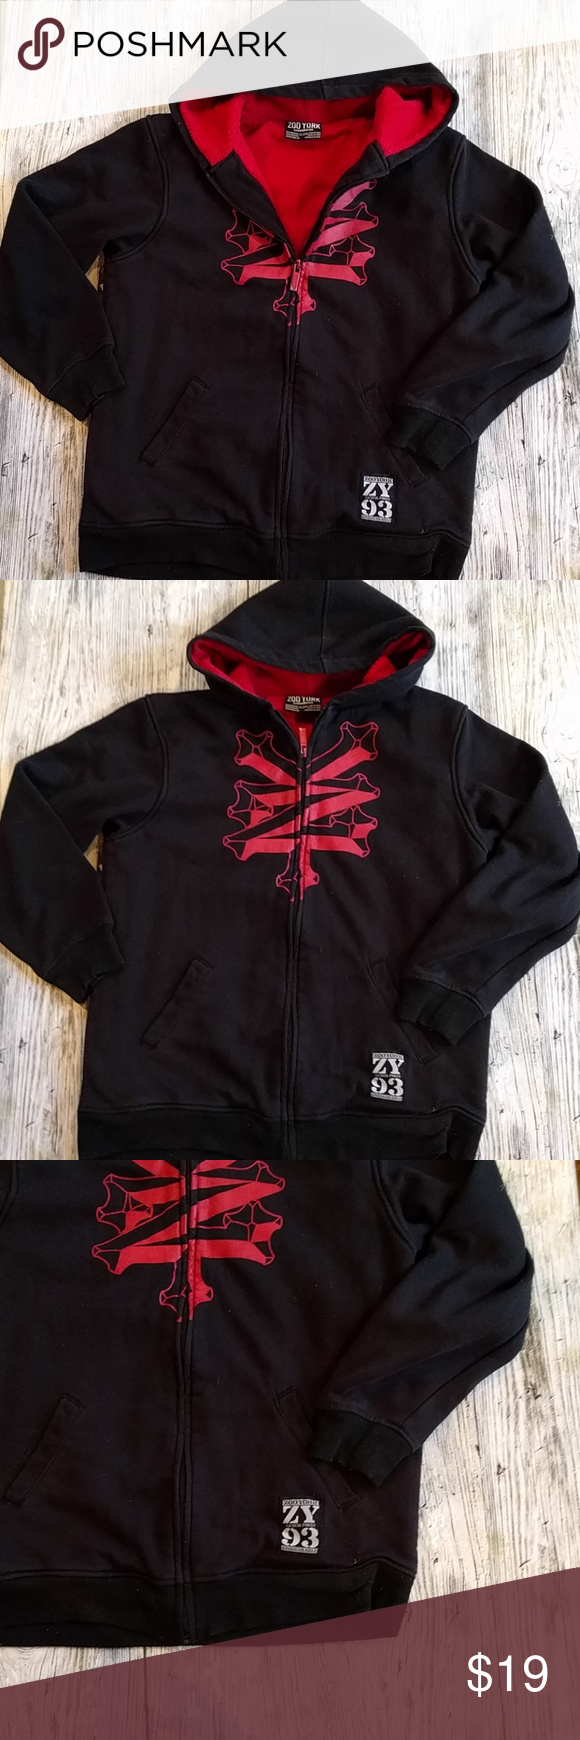 Zoo York fleece lined zip front hoodie Zoo York  boys  size 20 XL Black with red graphic print  red fleece lined interior Good used condition Zoo York Shirts & Tops Sweatshirts & Hoodies